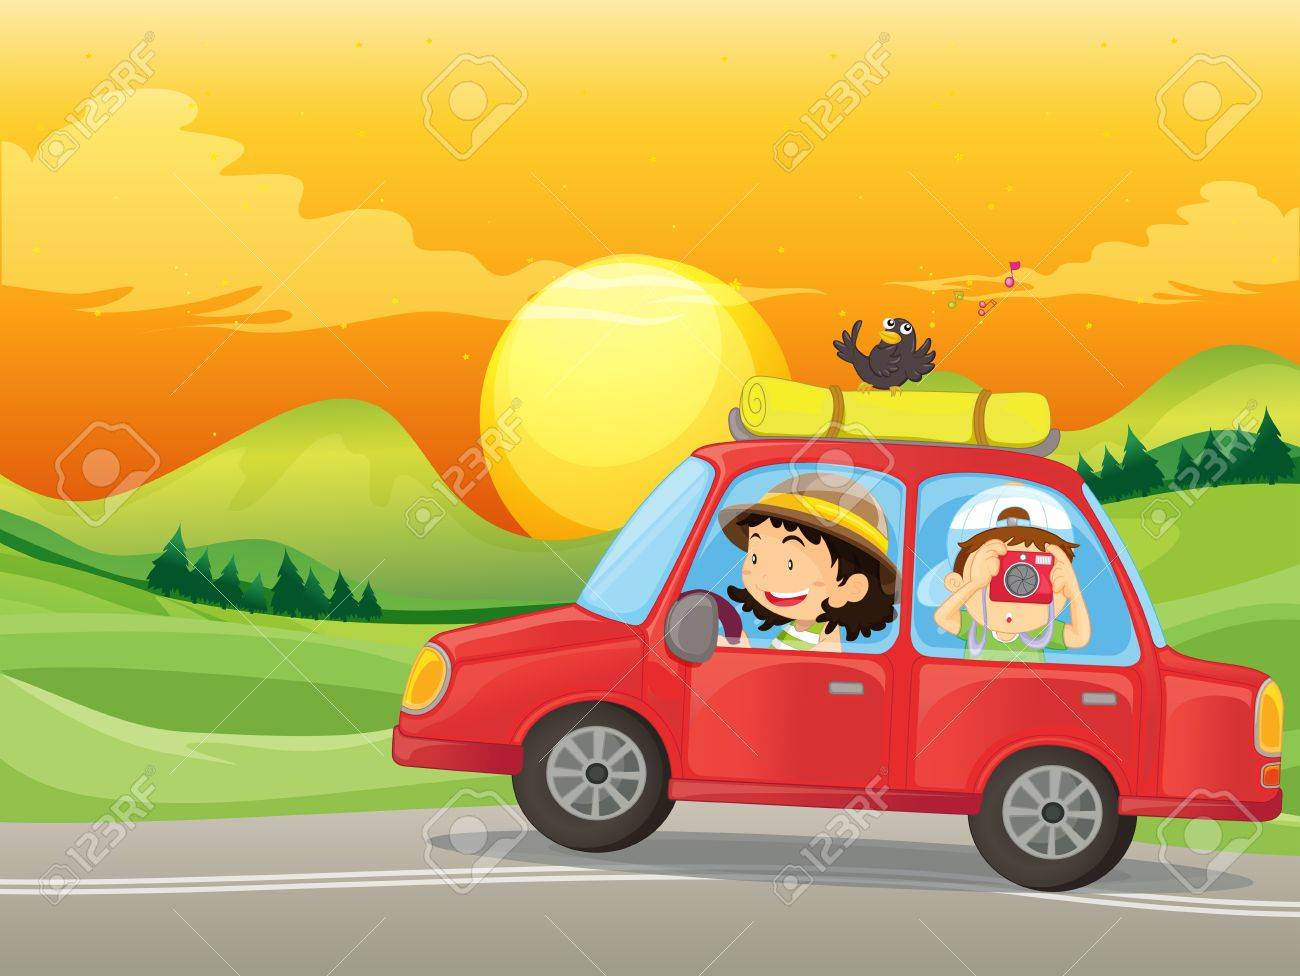 Illustration of a girl and a boy riding in a red car Stock Vector - 18210169